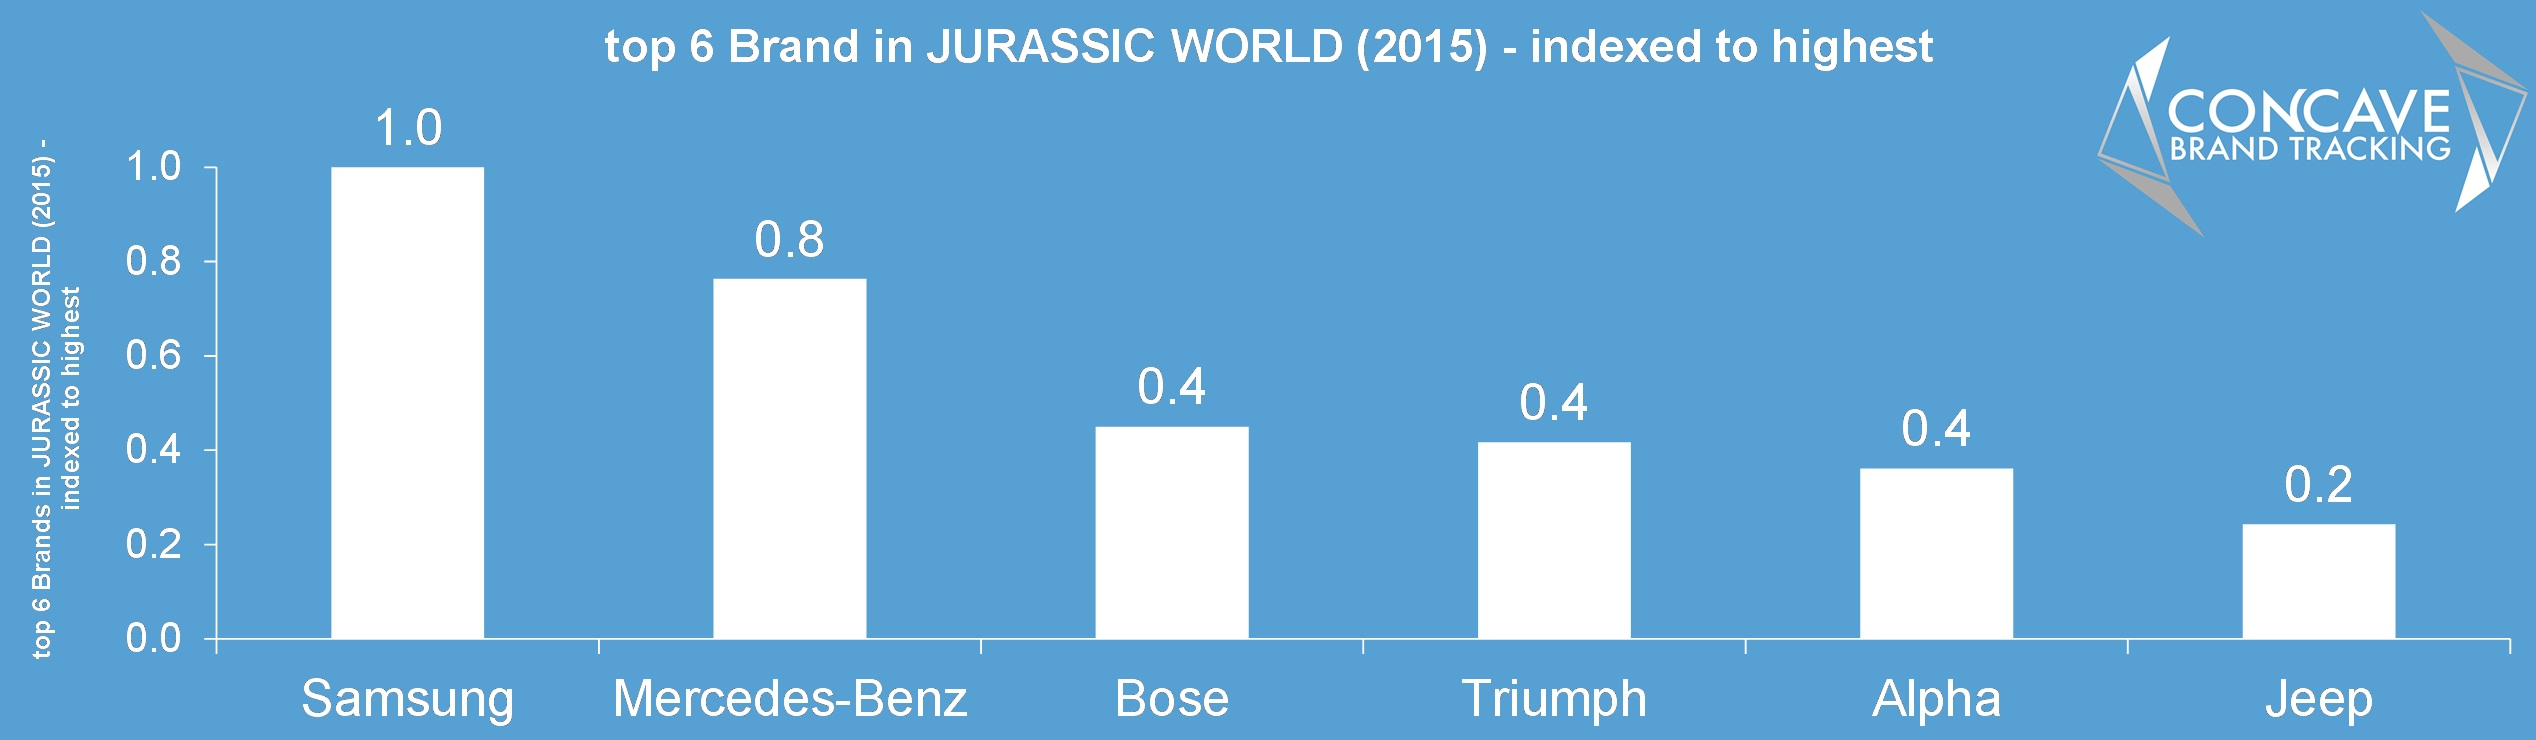 top 6 brands in jurassic world